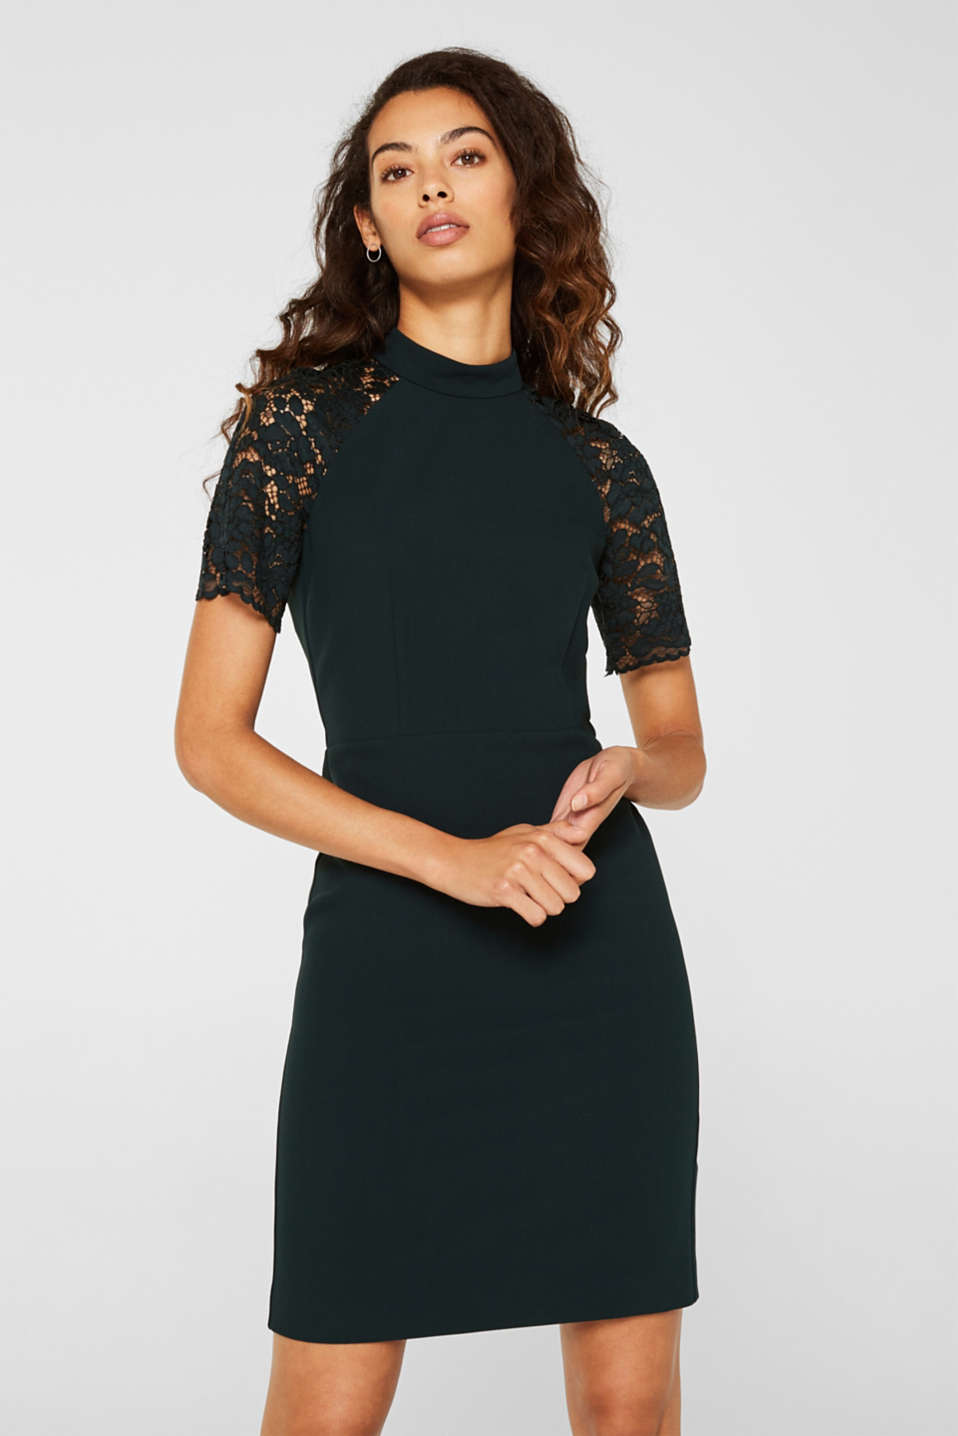 Stretch dress with band collar and lace, DARK TEAL GREEN, detail image number 5